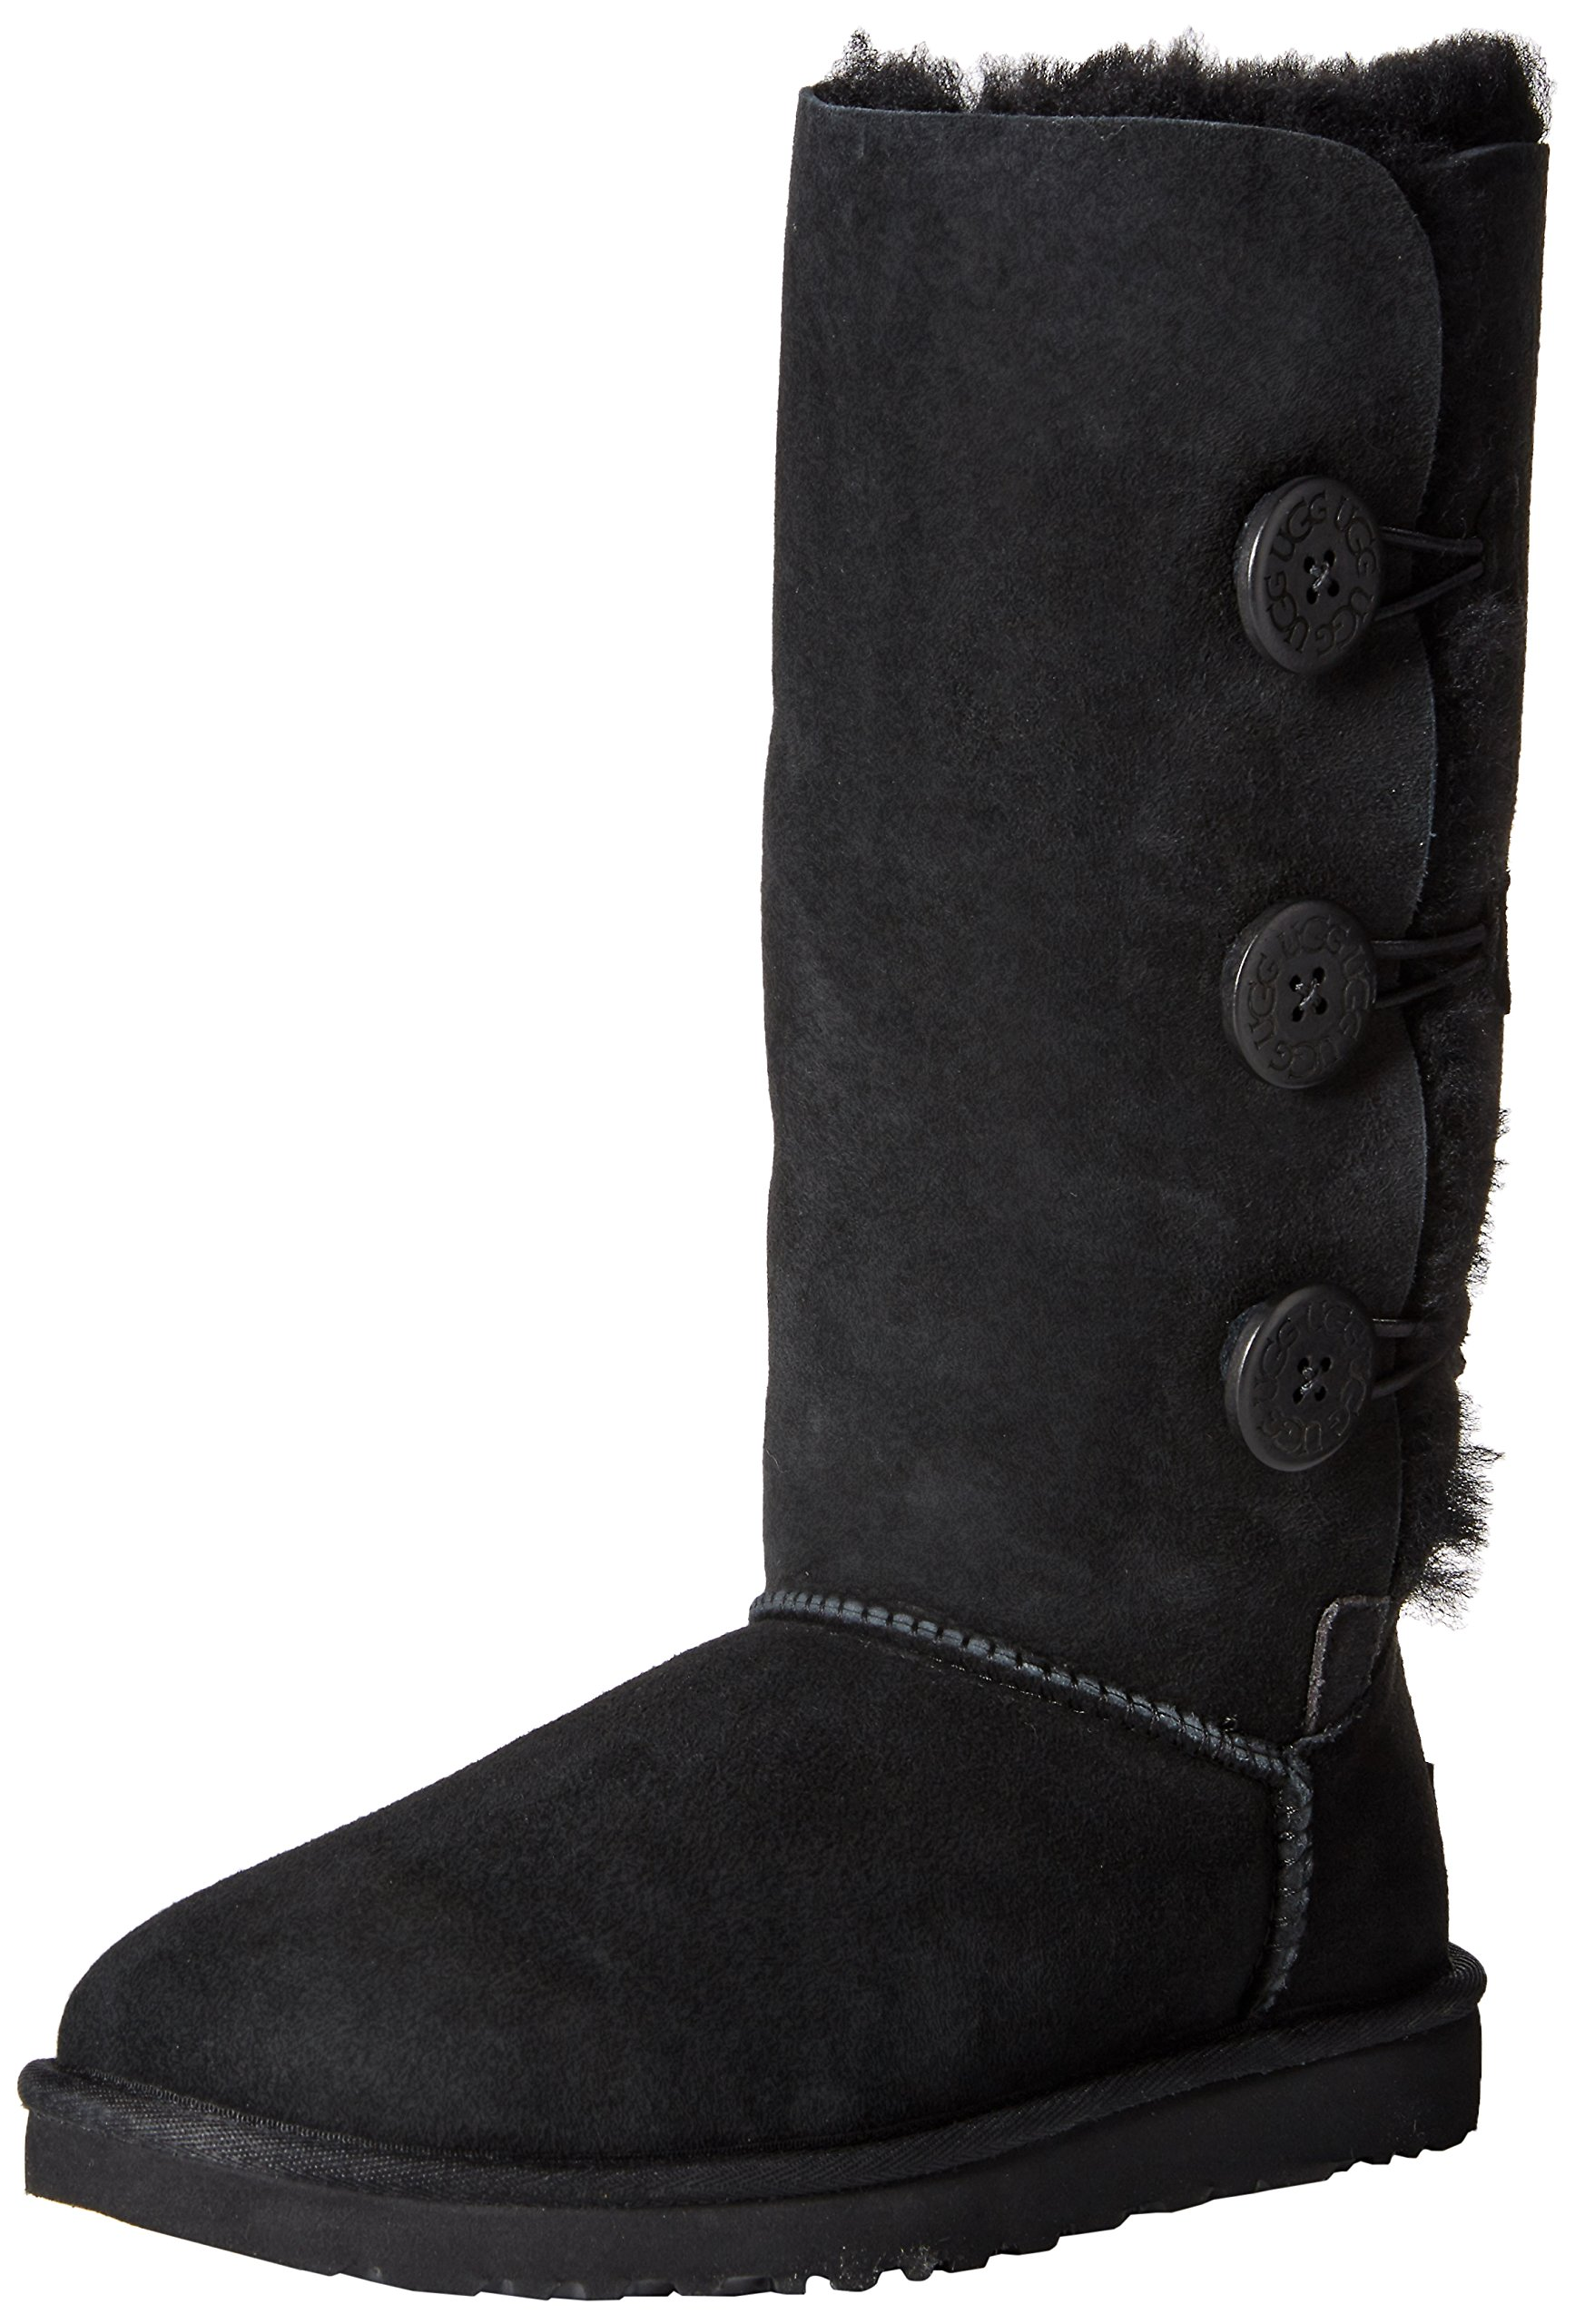 Ugg Women's Bailey Button Triplet Boot, Black, 6 M US by UGG (Image #1)